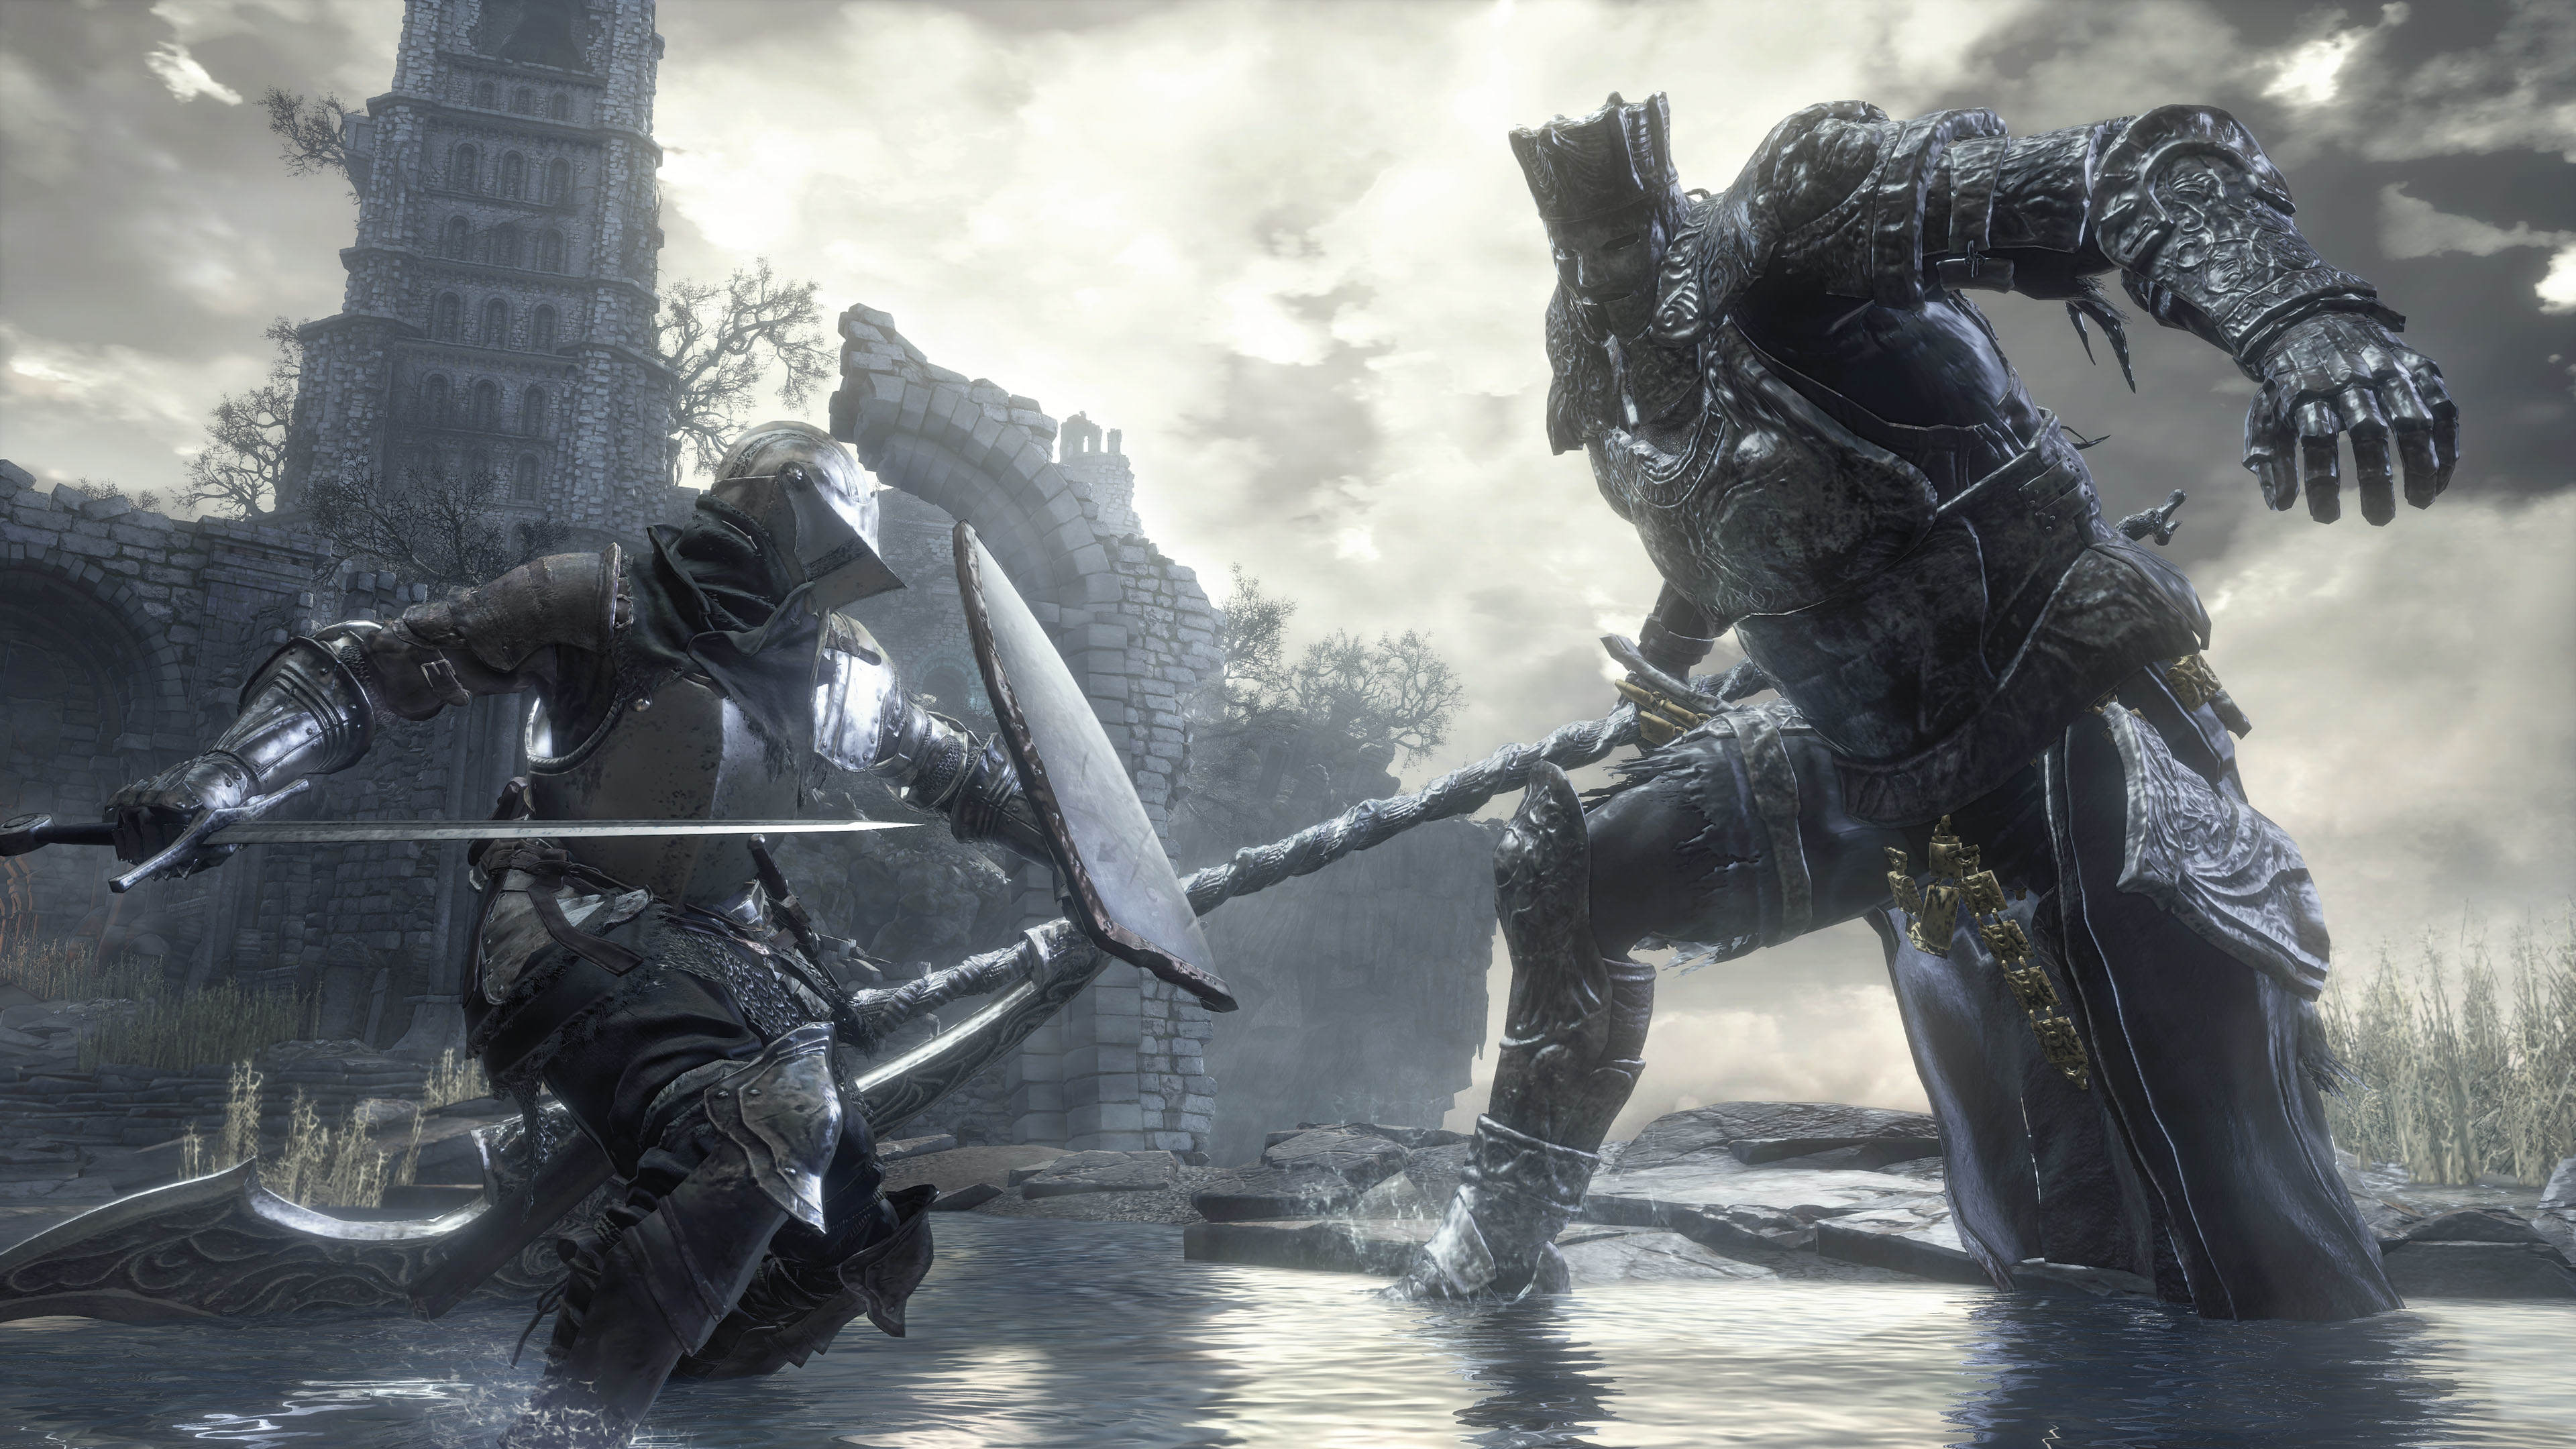 New Dark Souls 3 Screenshots Reveal All Kinds Of New Info Iudex Gundyr battles player to test their worth noscale 1